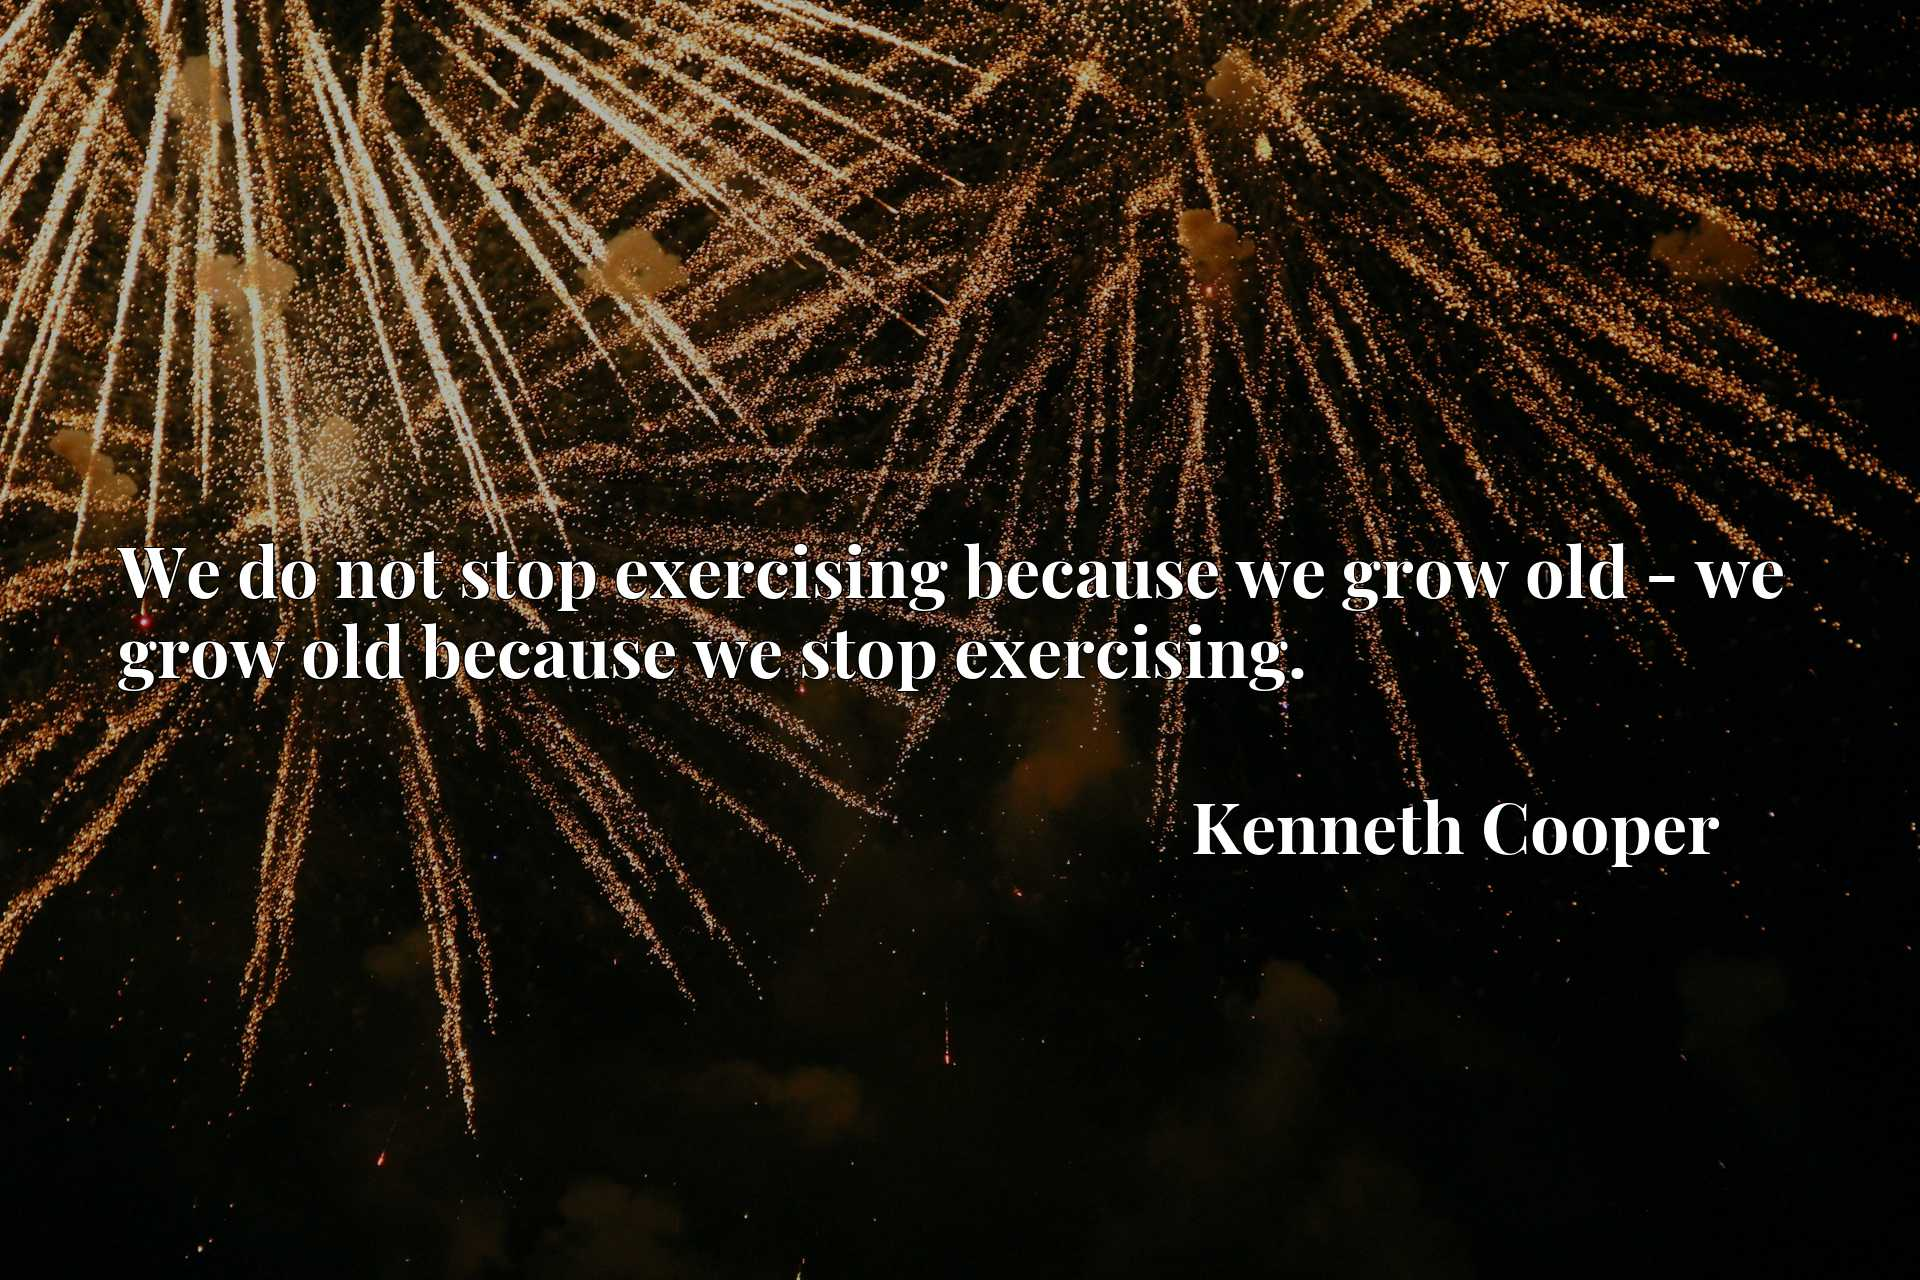 We do not stop exercising because we grow old - we grow old because we stop exercising.